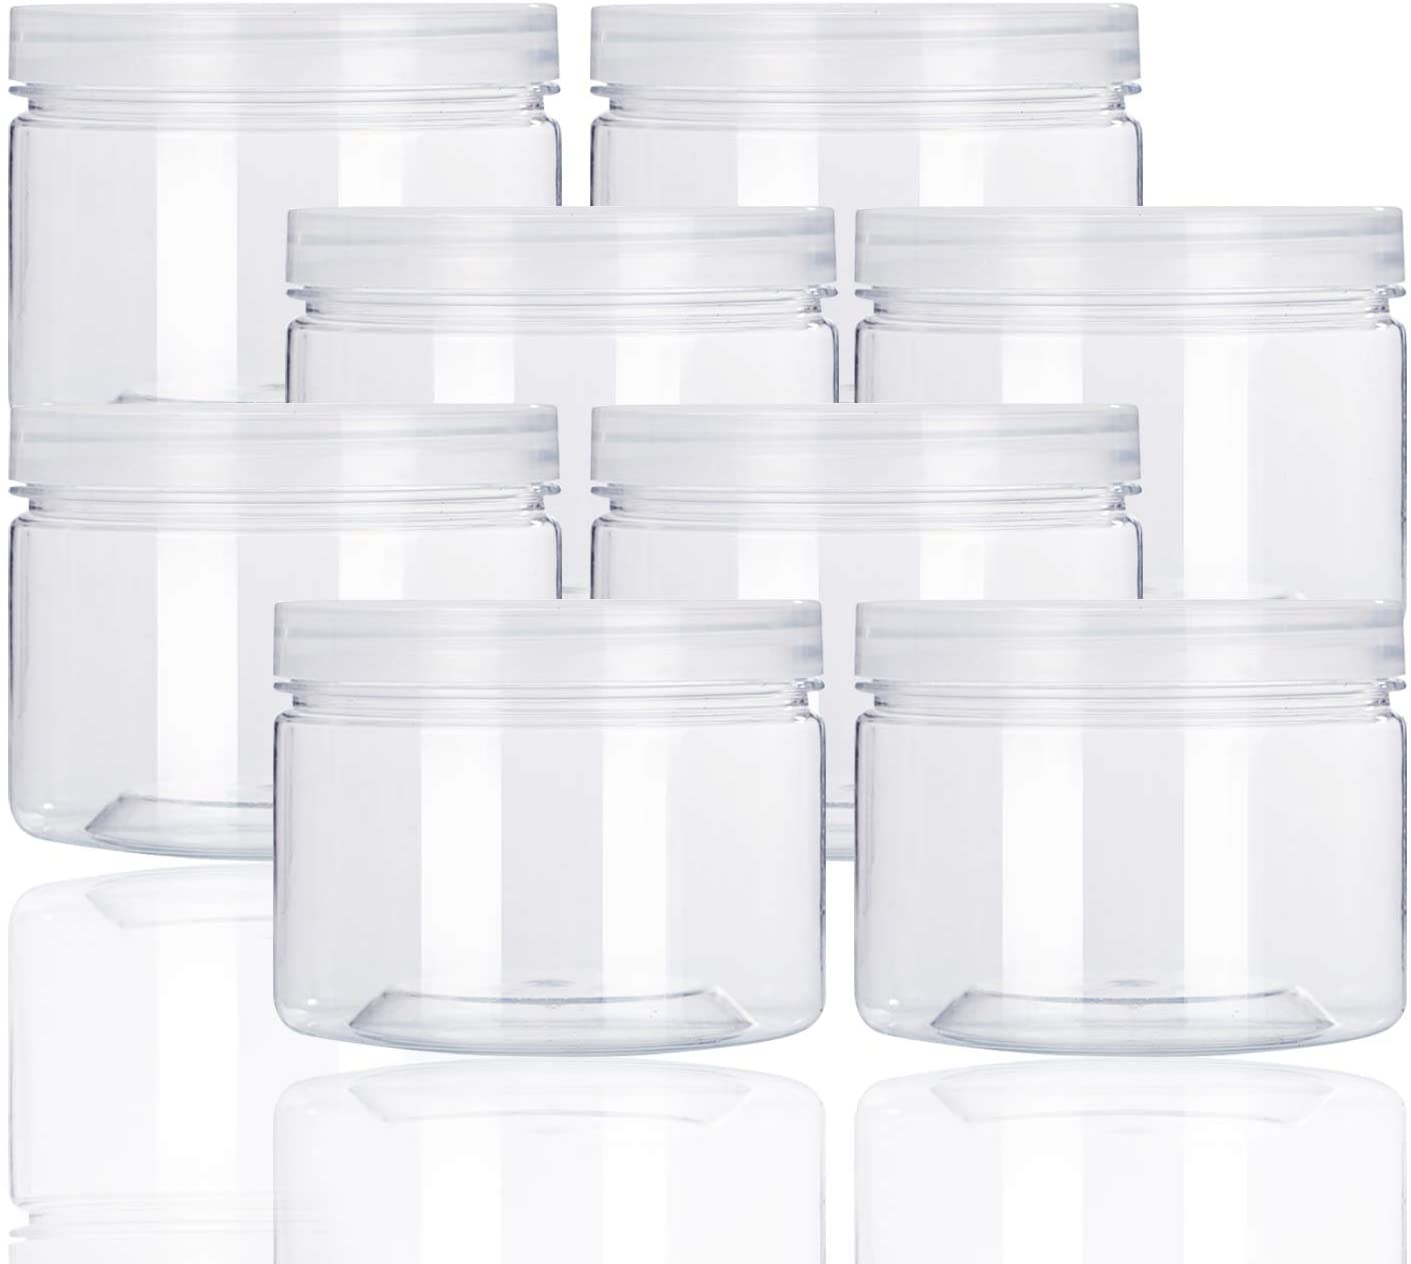 12oz Clear Plastic Storage Jars Containers,8 Pack Refillable Wide-Mouth Plastic Slime Storage Containers for Beauty Products,Kitchen & Household Storage - BPA Free